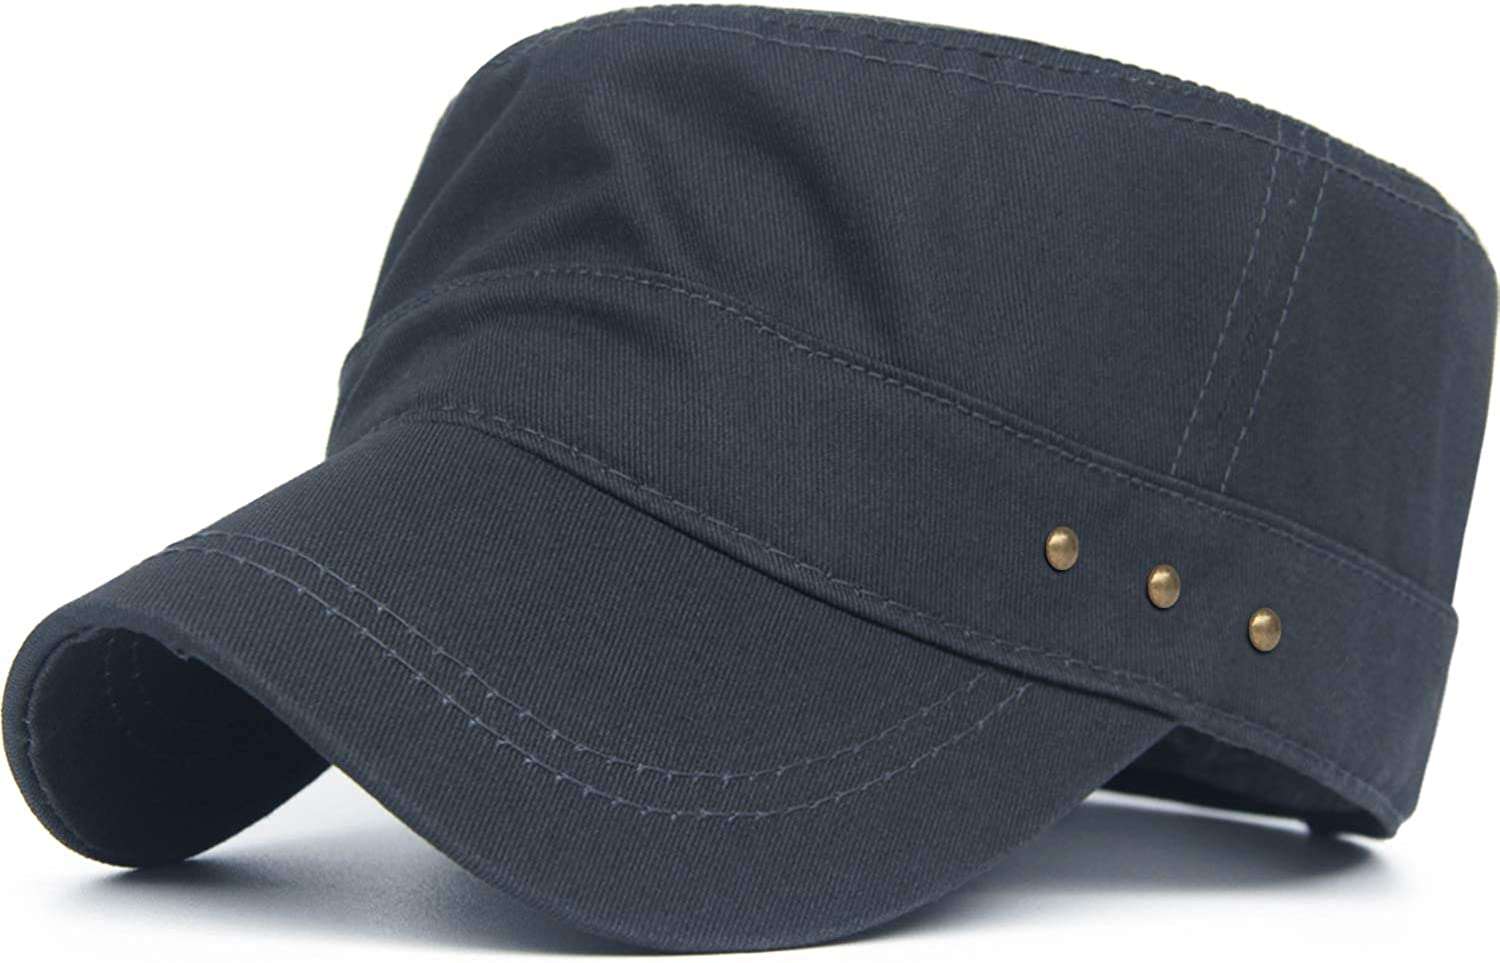 Rayna Fashion Cotton Max 74% OFF Cadet Cap Army Flat Caps Hats Uniq Now free shipping Military